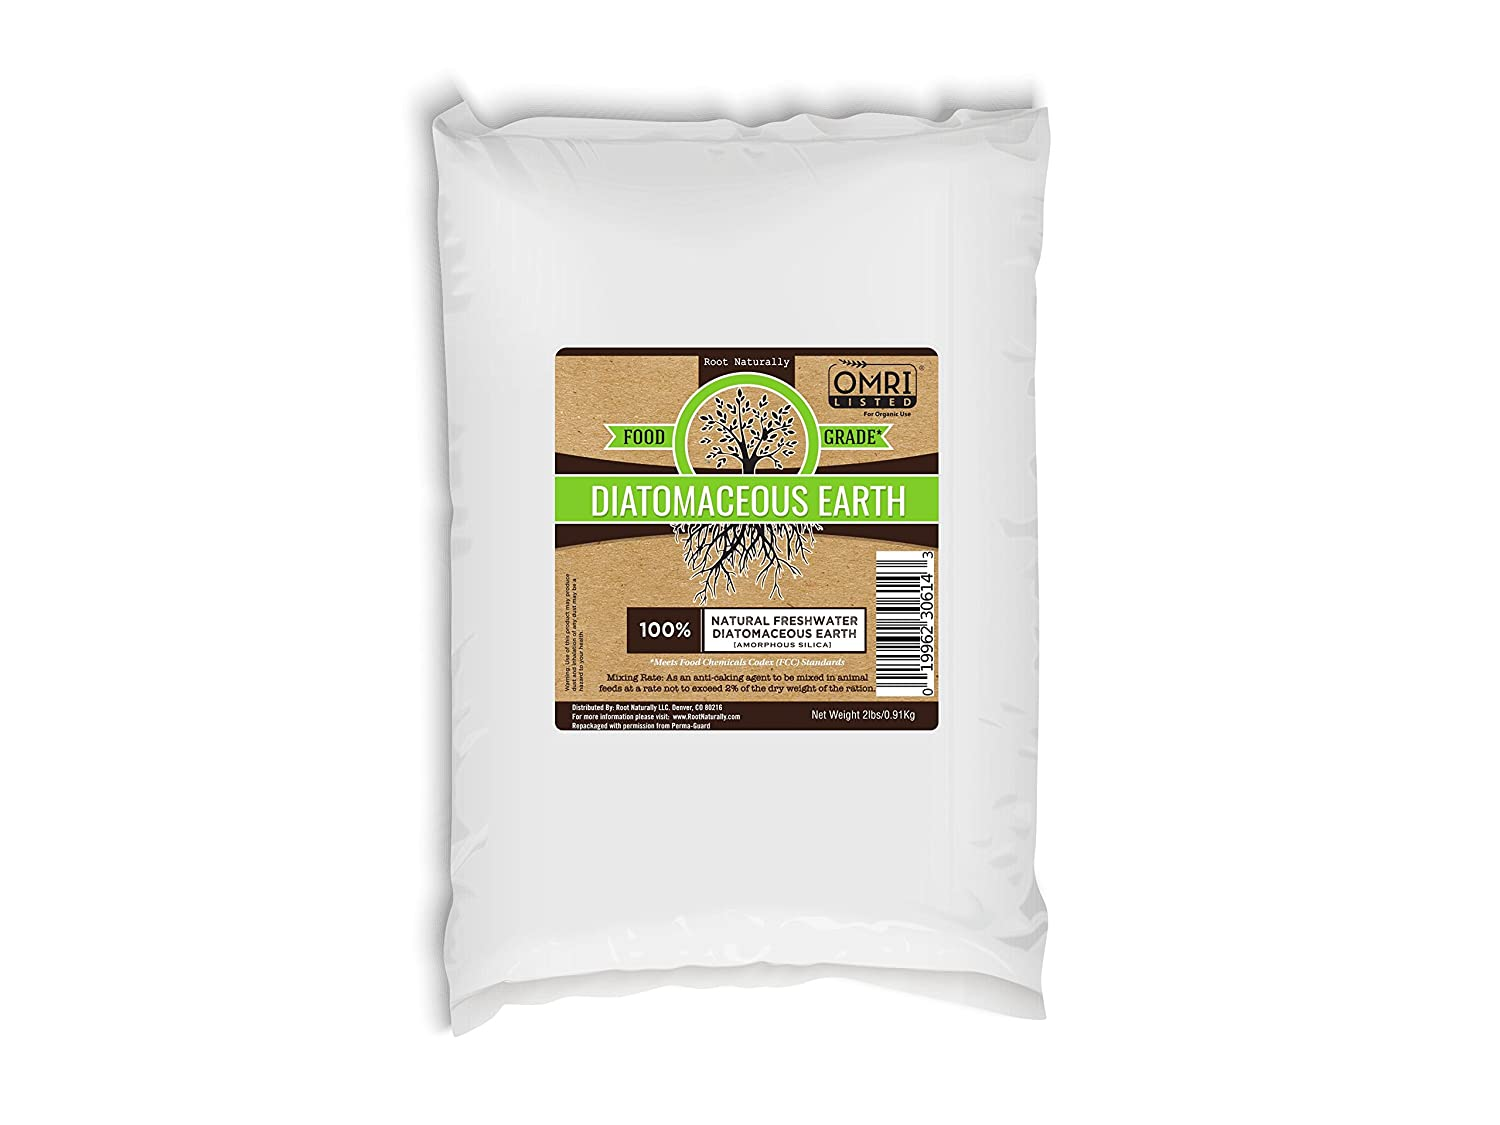 Diatomaceous Earth Food Grade OMRI Listed - 2 Lb